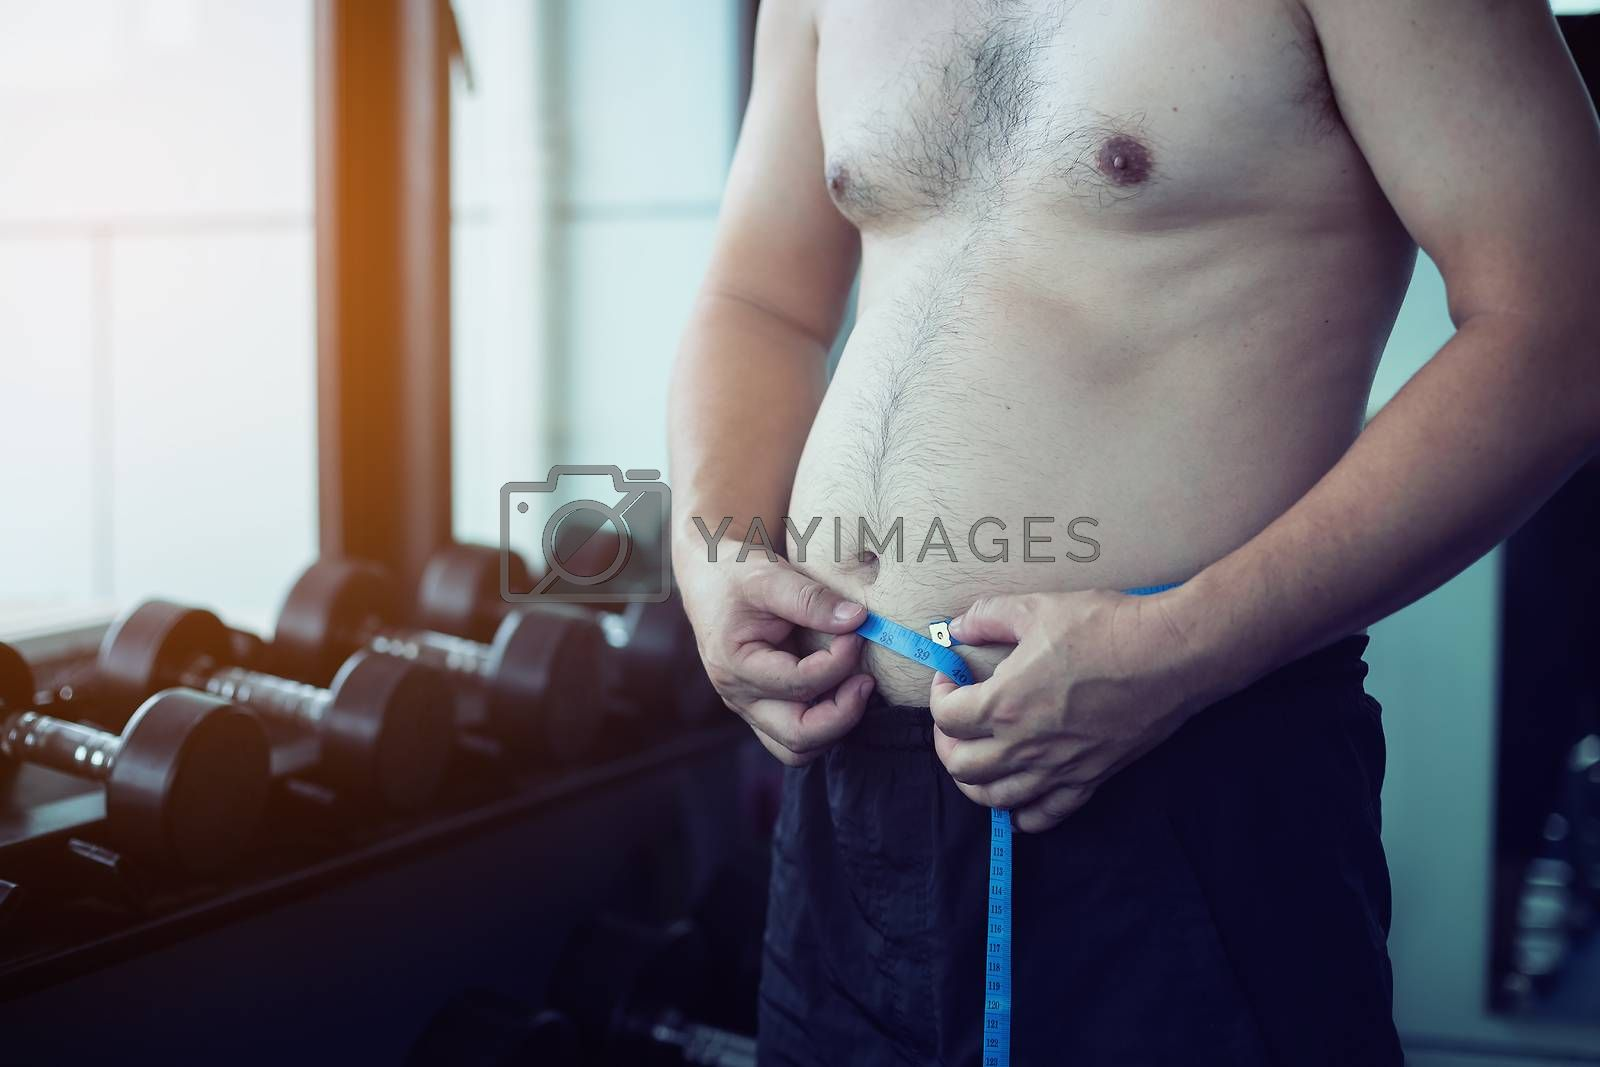 The young man measured his waist with a gauge after hard workouts. Health care concept